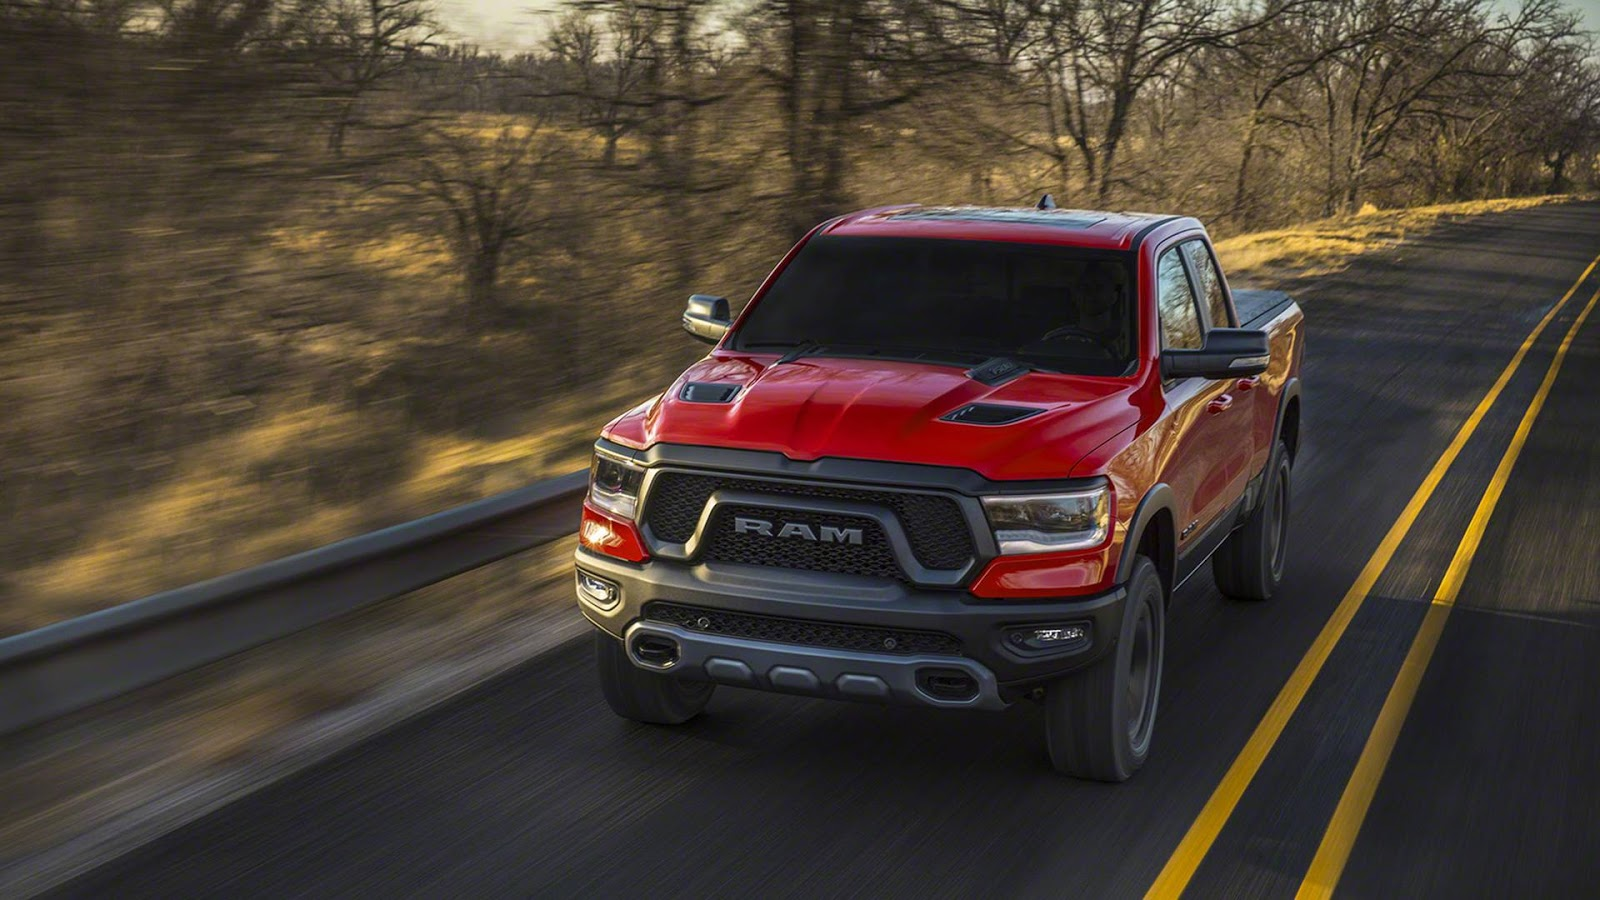 Ram 1500 Towing Capacity >> 2019 Ram 1500 Pickup Goes Official With 48-Volt Mild-Hybrid System - autoevolution